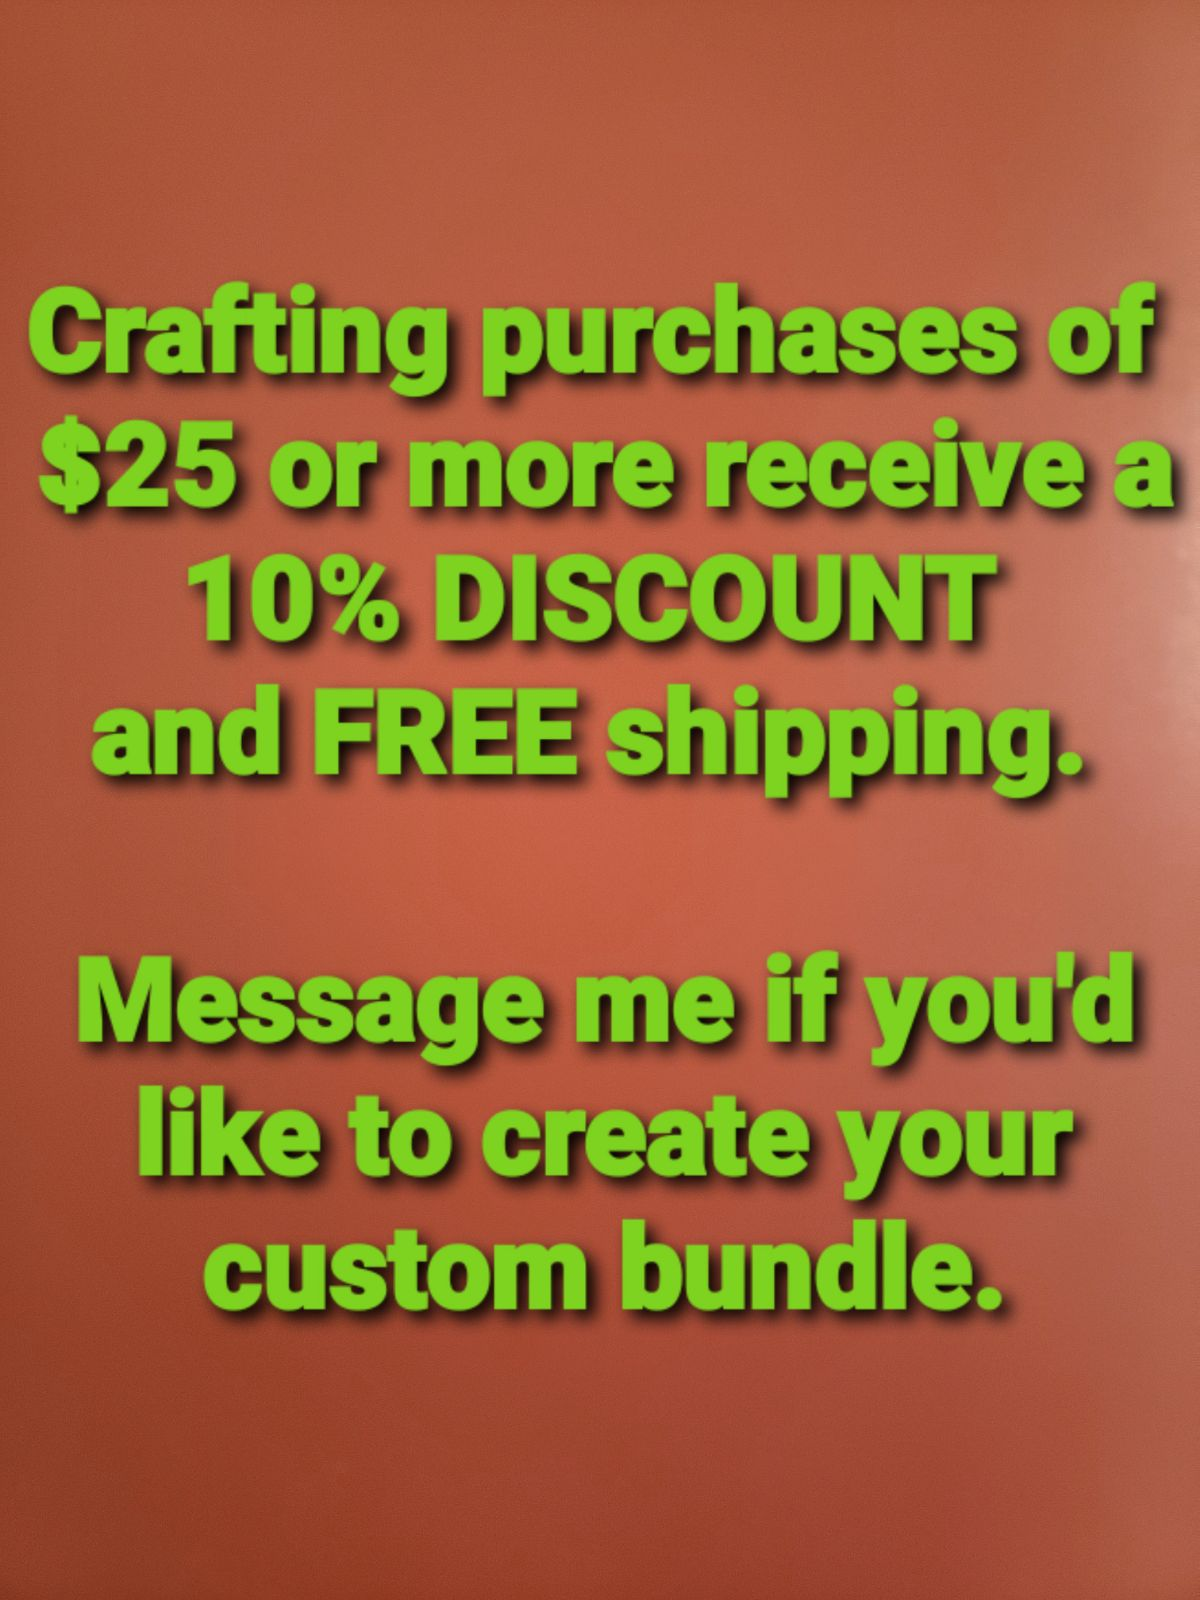 CRAFTING ITEMS - Bundle and Save!